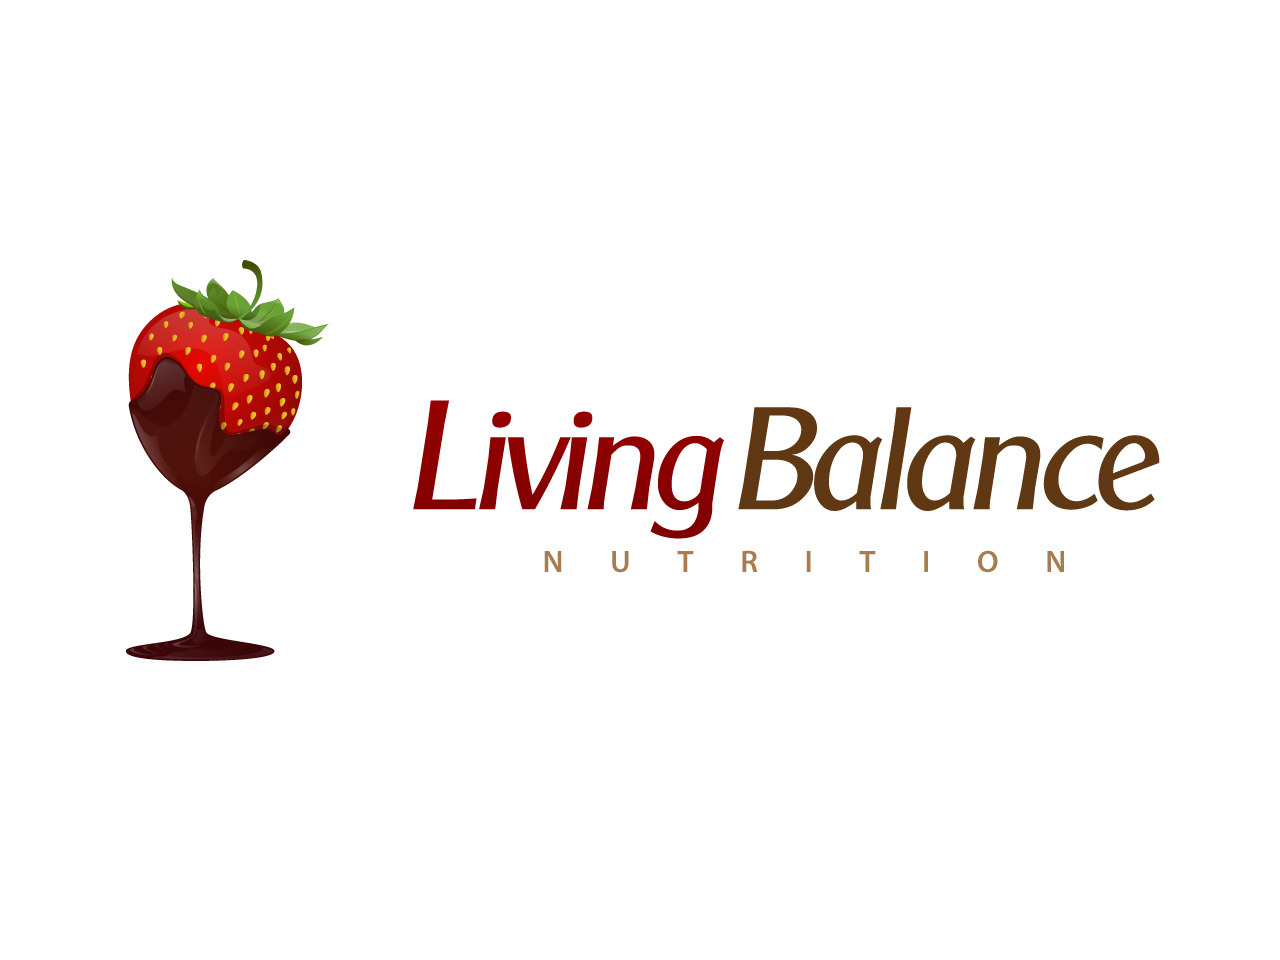 Logo Design by jpbituin - Entry No. 52 in the Logo Design Contest Unique Logo Design Wanted for Living Balance Nutrition.